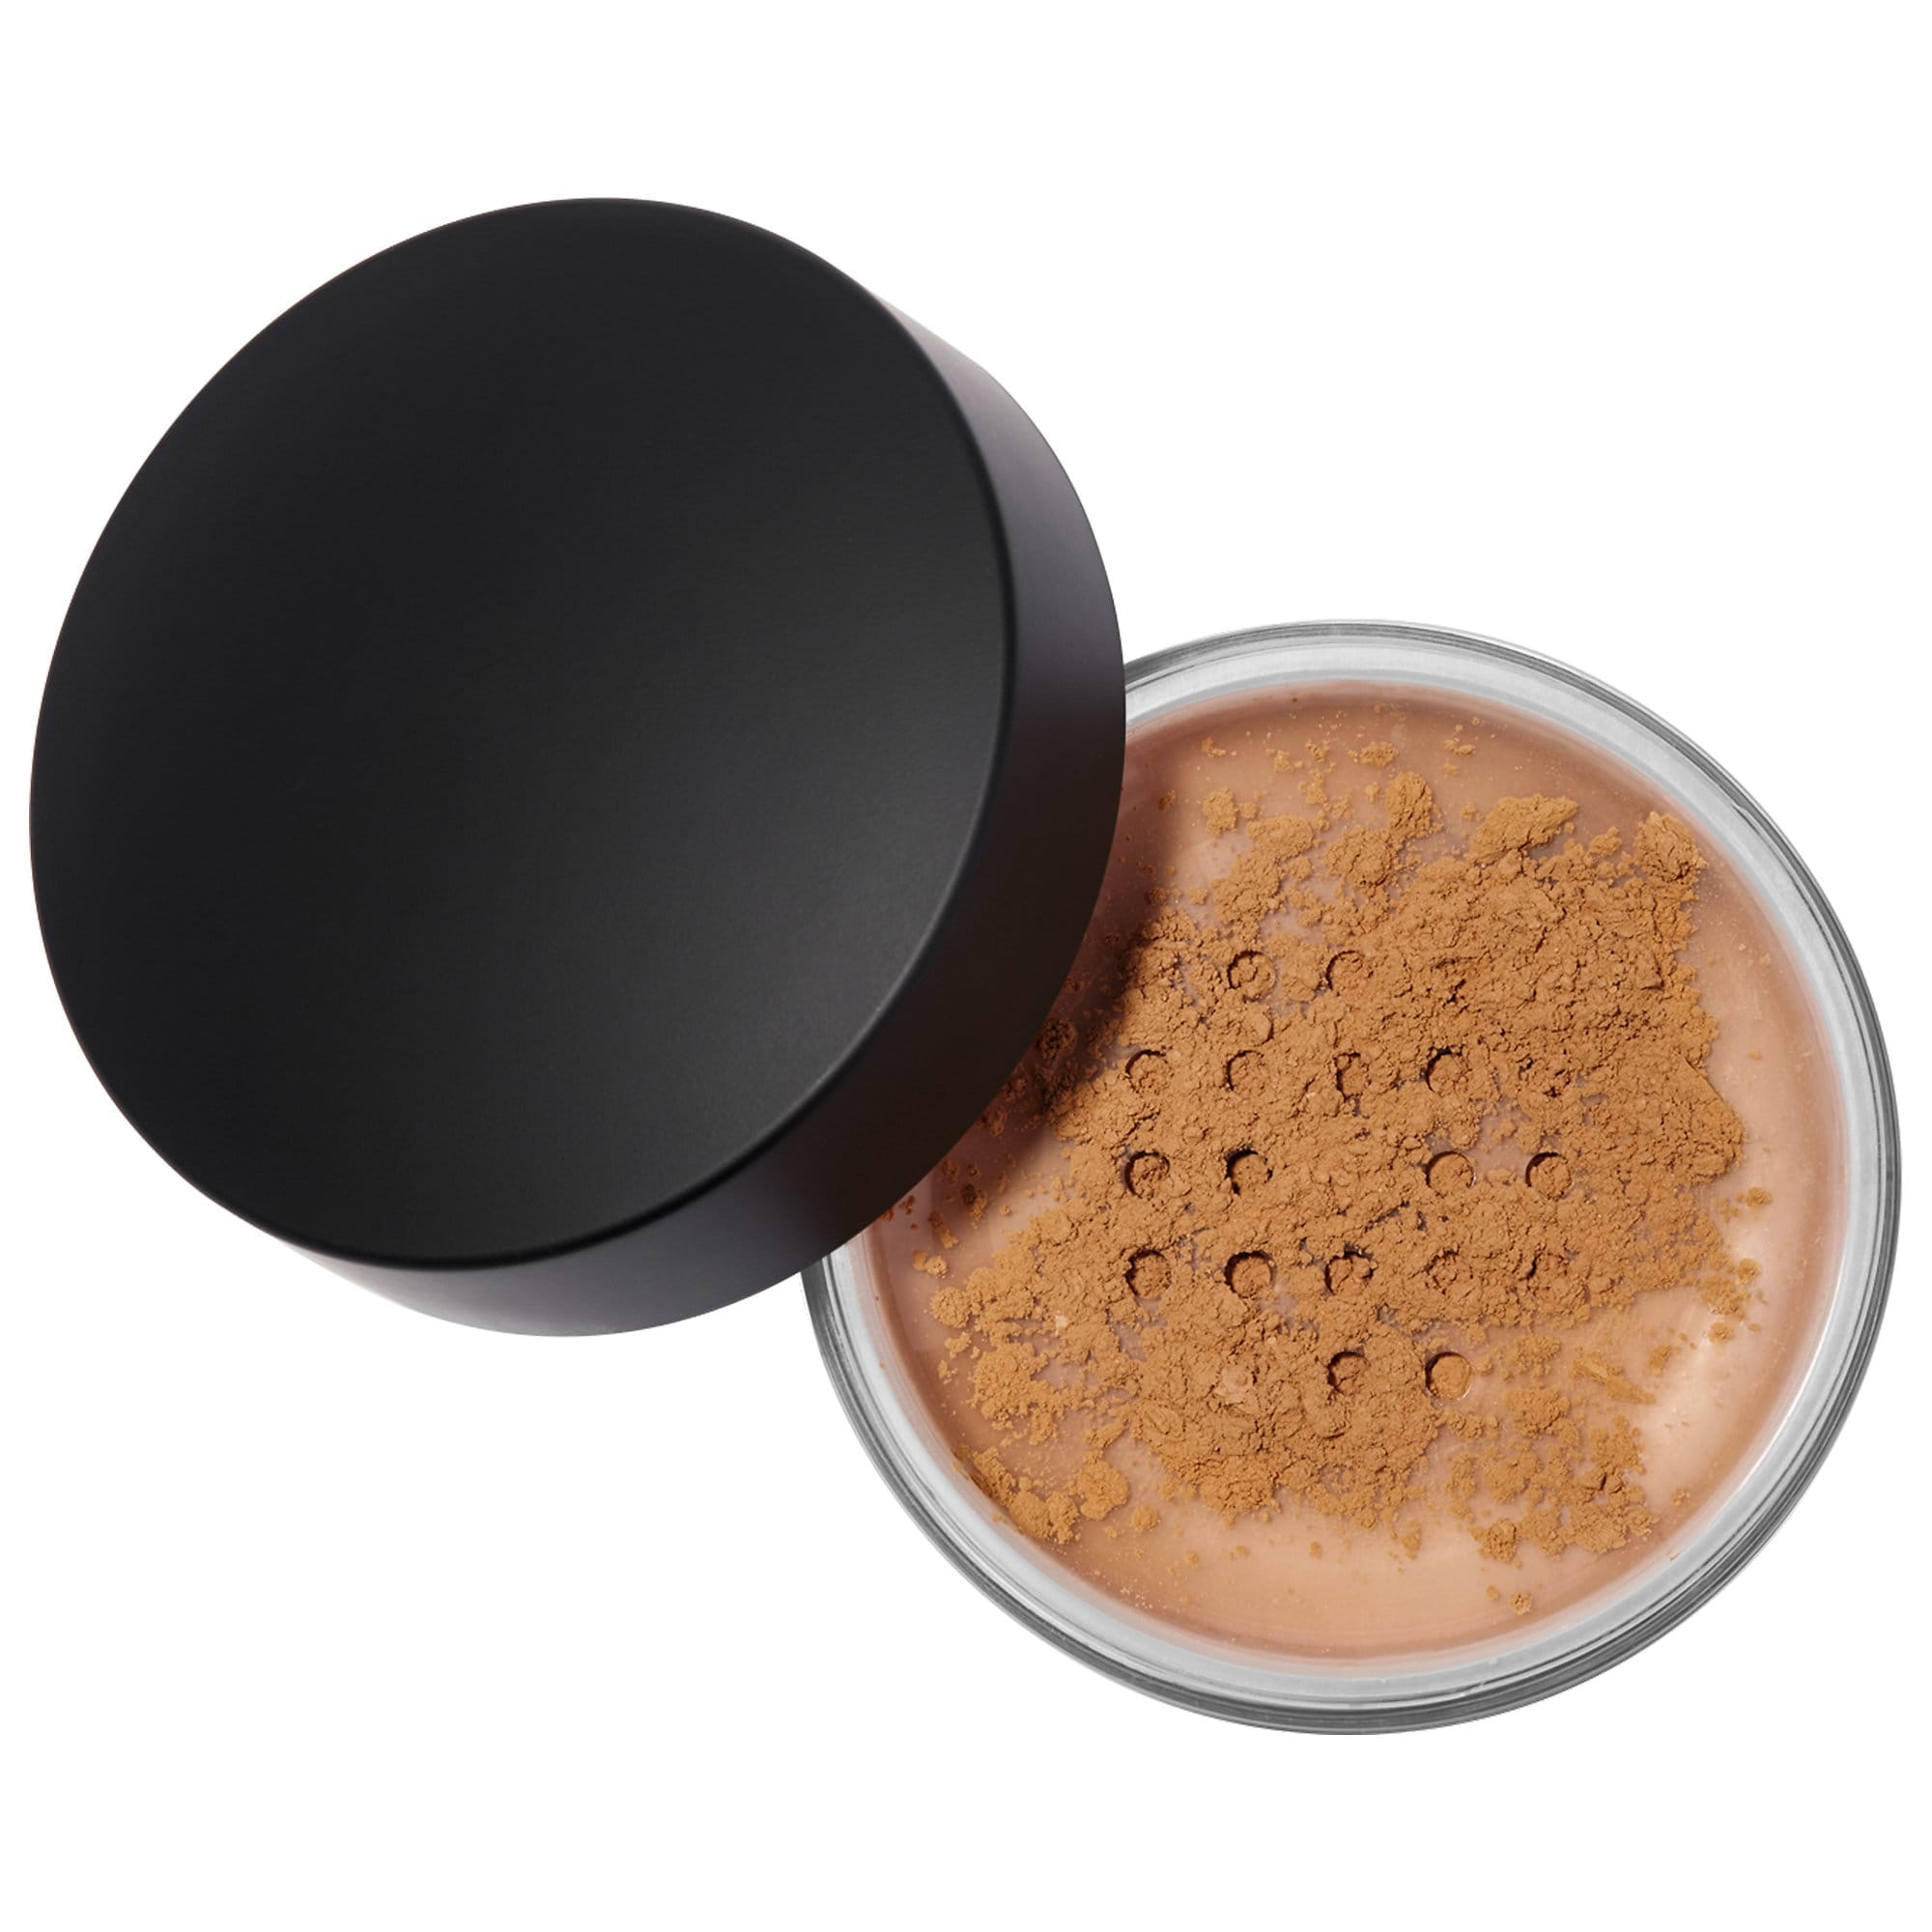 LOOSE SETTING POWDER (POLVO TRASLÚCIDO)